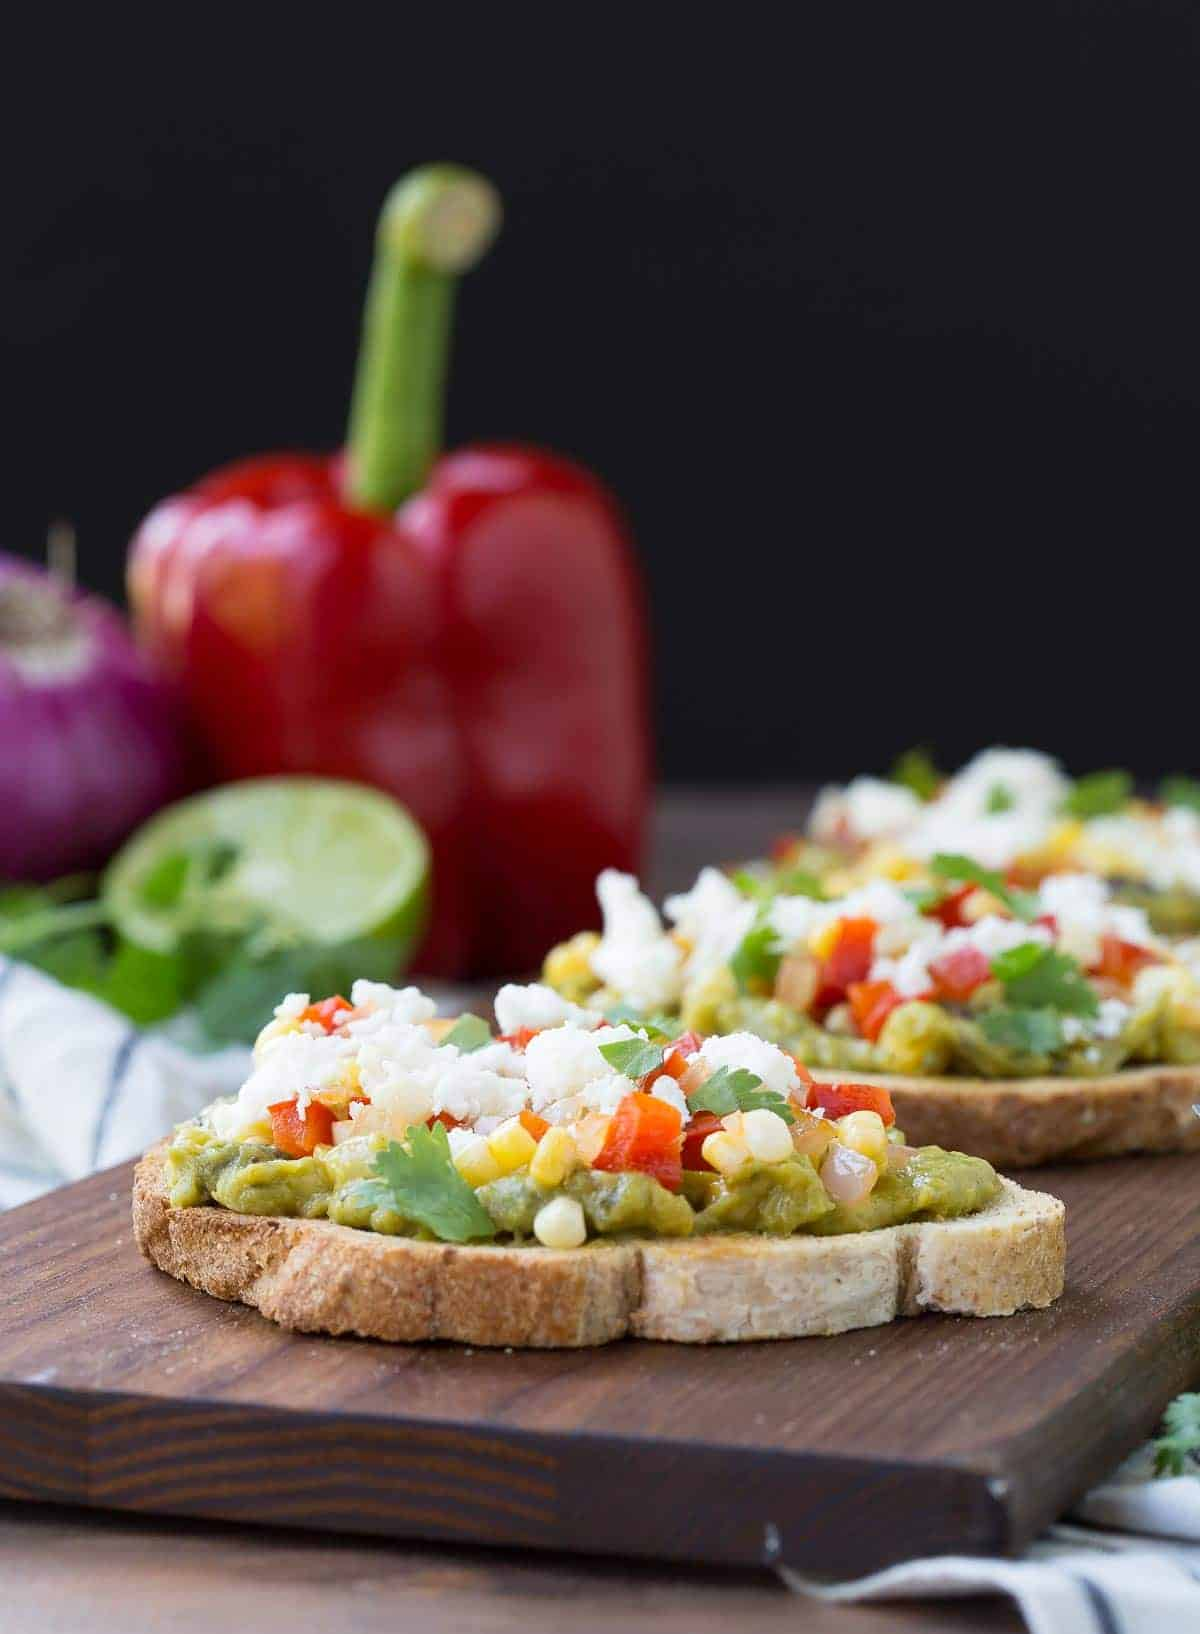 Front view of guacamole toasts on board with red onion, red bell pepper, half of lime, and cilantro along side.